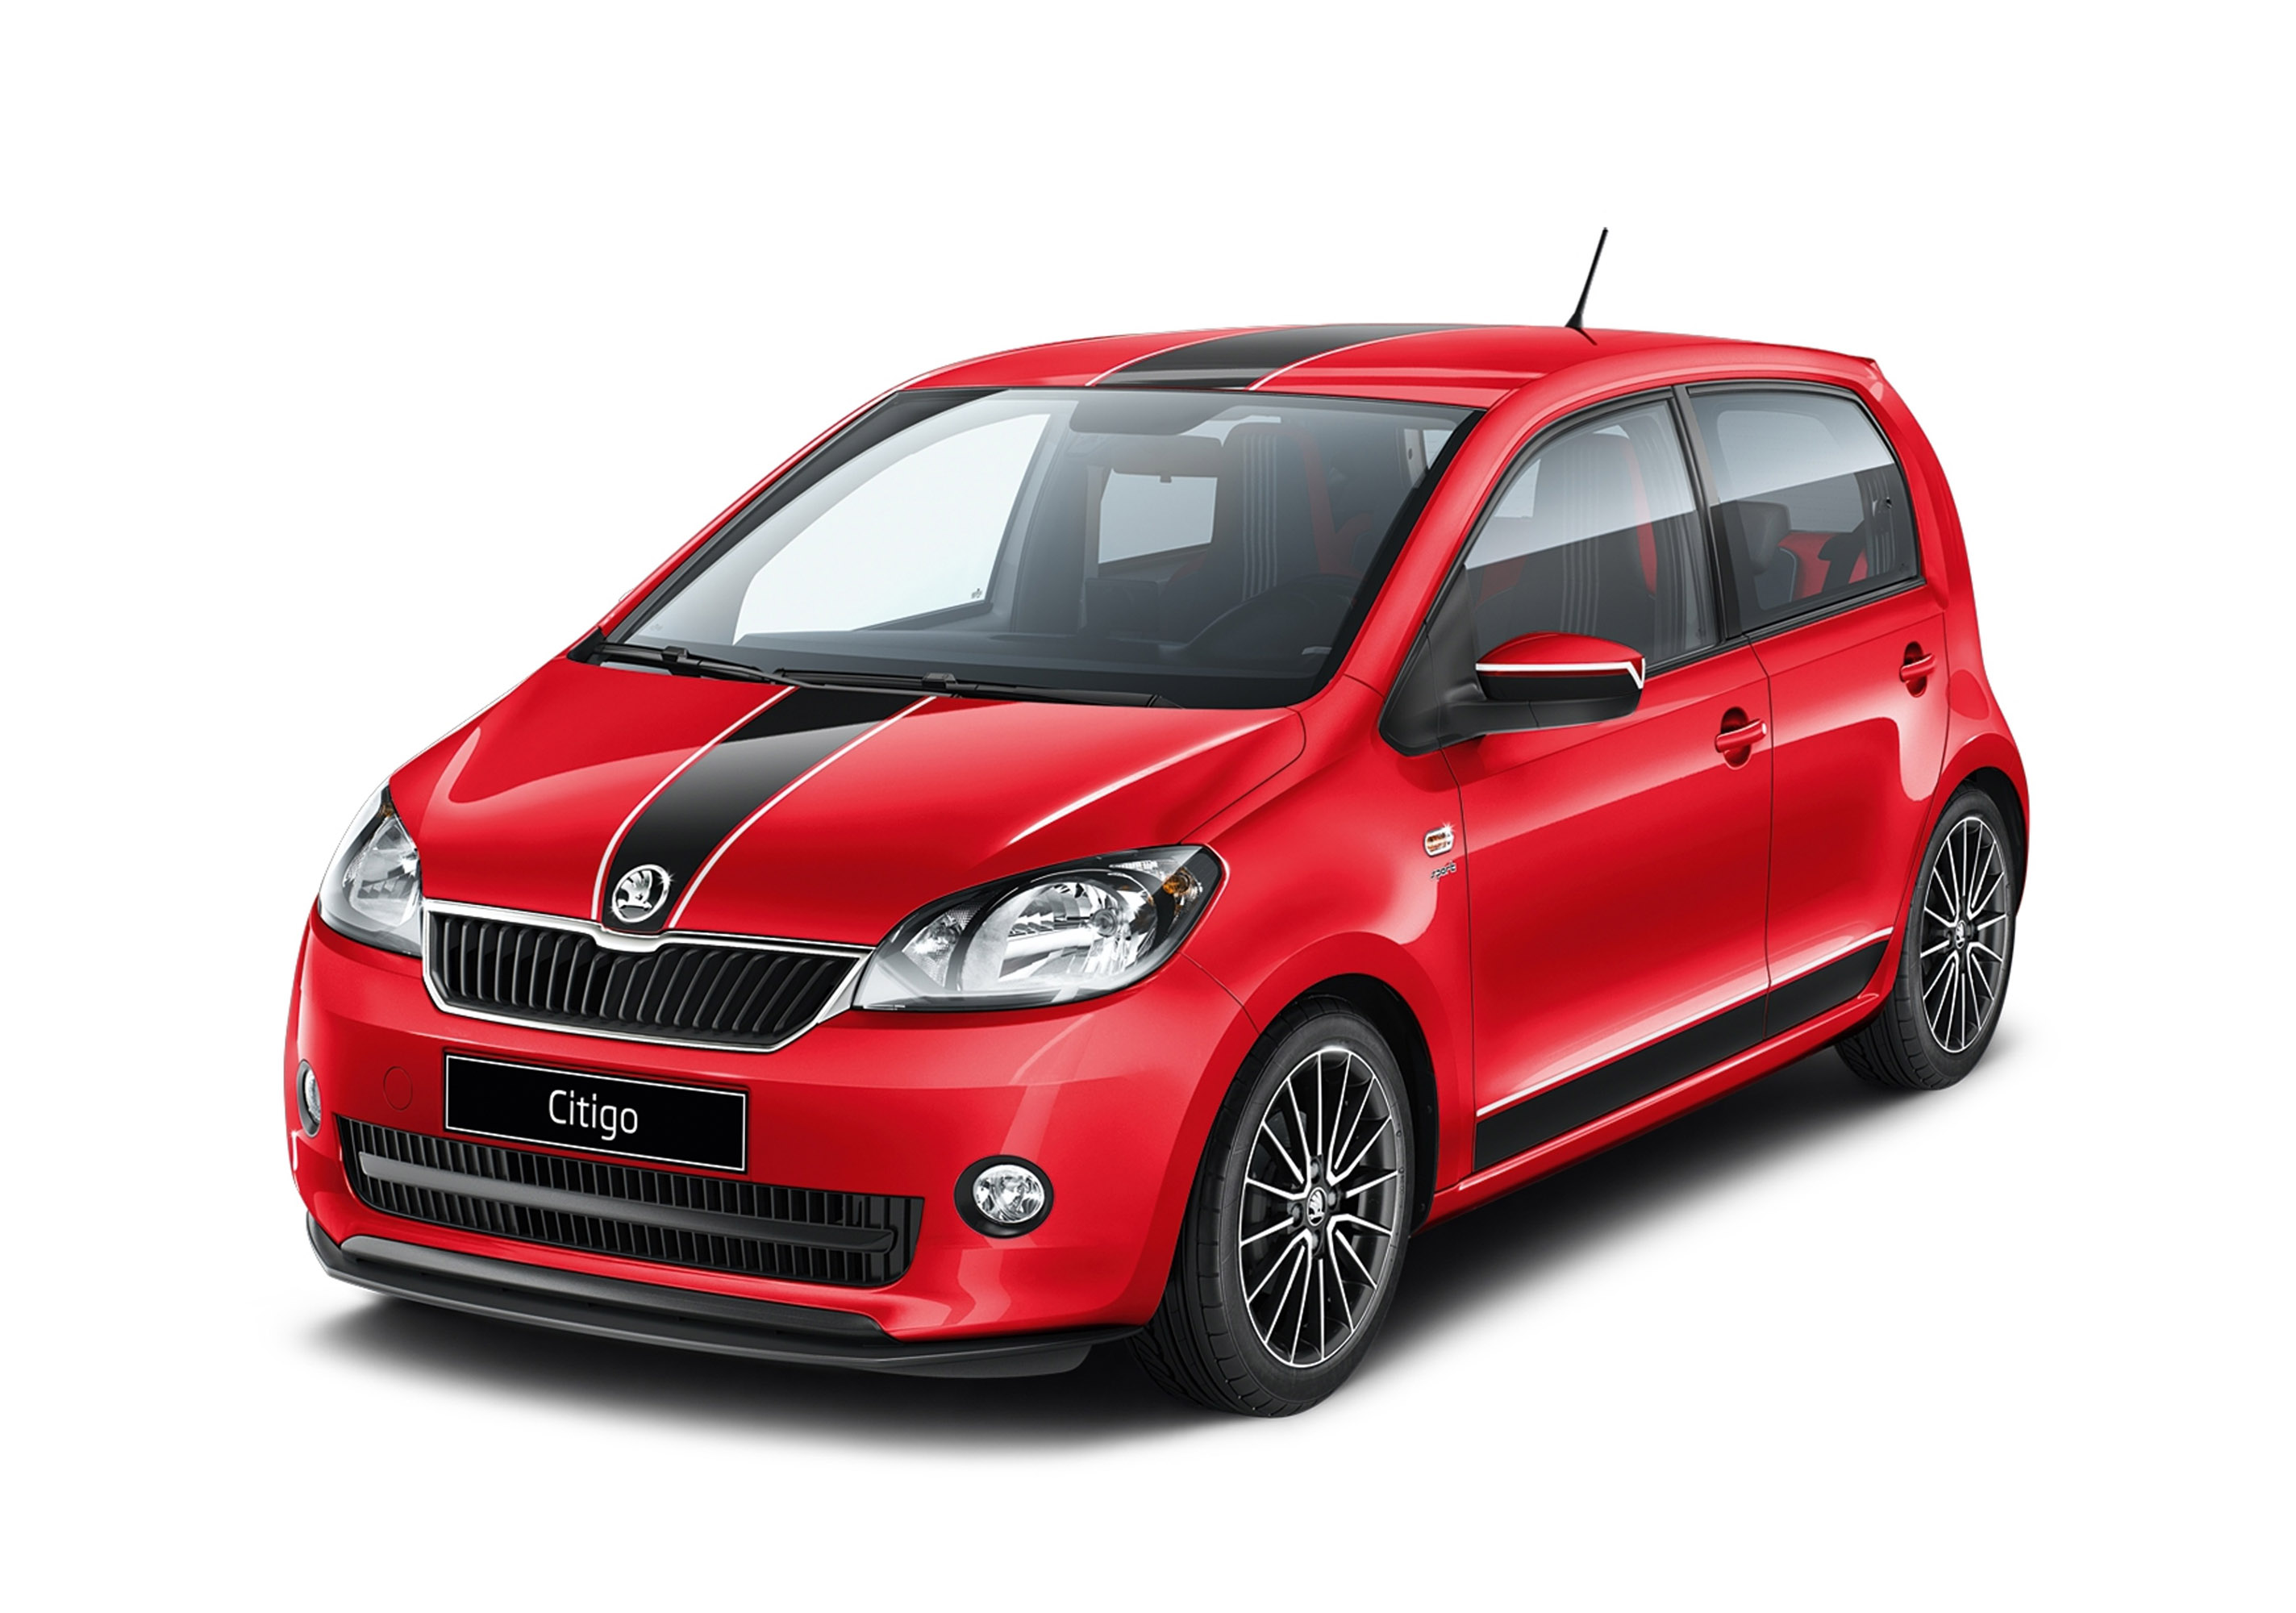 2013 skoda citigo sport racing chic. Black Bedroom Furniture Sets. Home Design Ideas